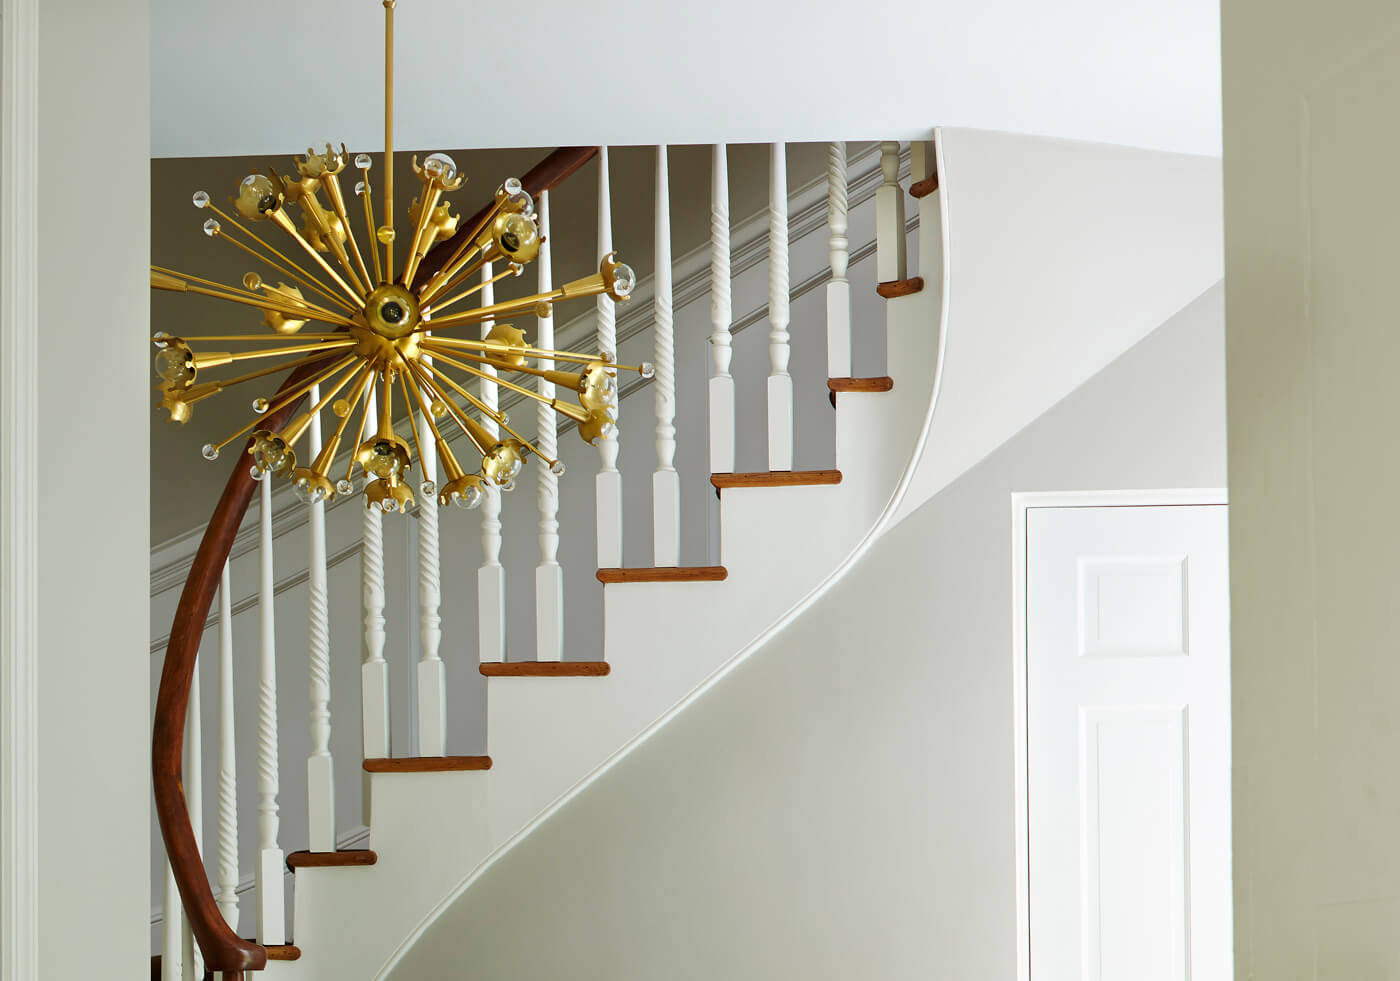 JONATHAN ADLER SPUTNIK CHANDELIER by Robert Abbey